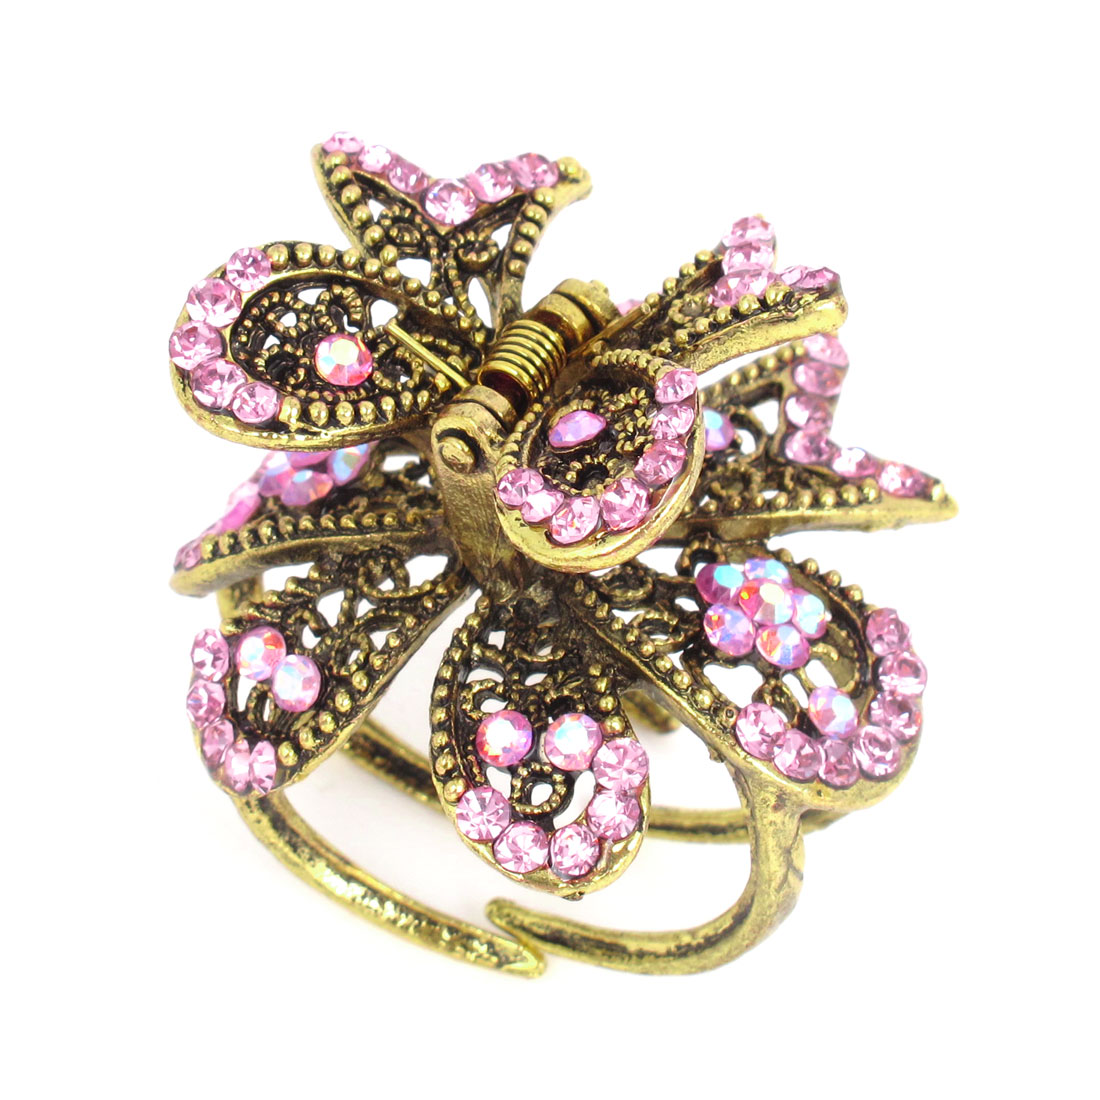 Pink Glistening Rhinestone Inlaid Butterfly Bronze Tone Metal Hair Claw Clamp